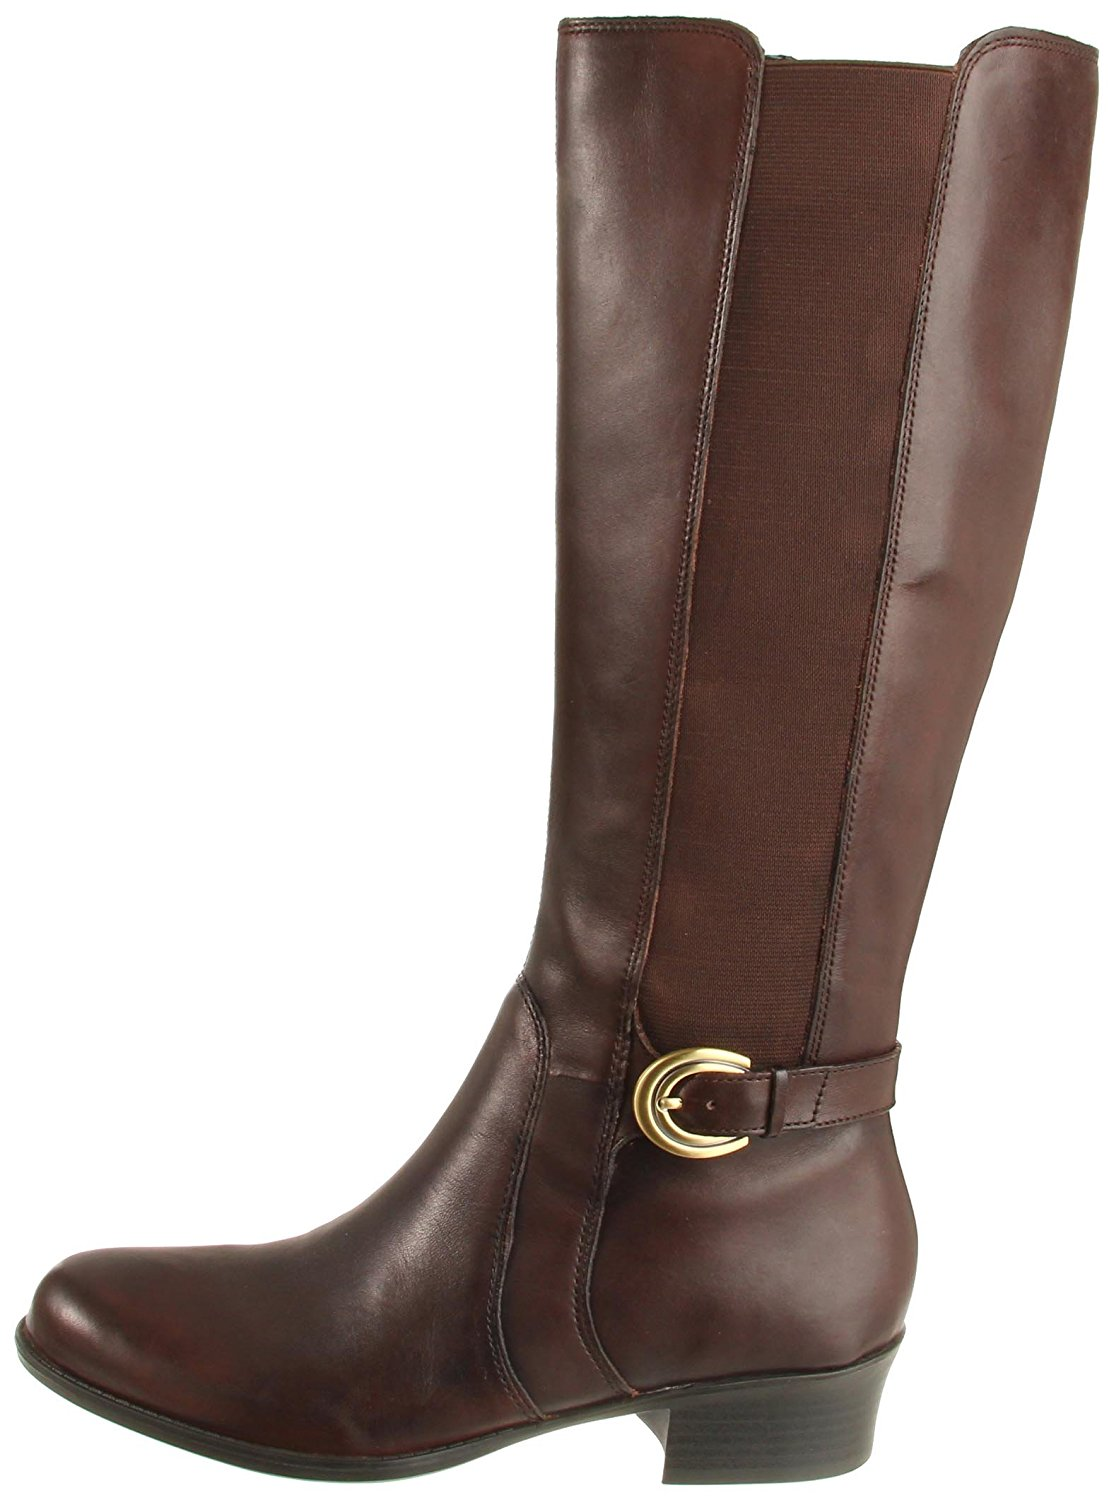 Naturalizer Womens Arness Leather Almond Toe Knee High Riding Boots by Naturalizer